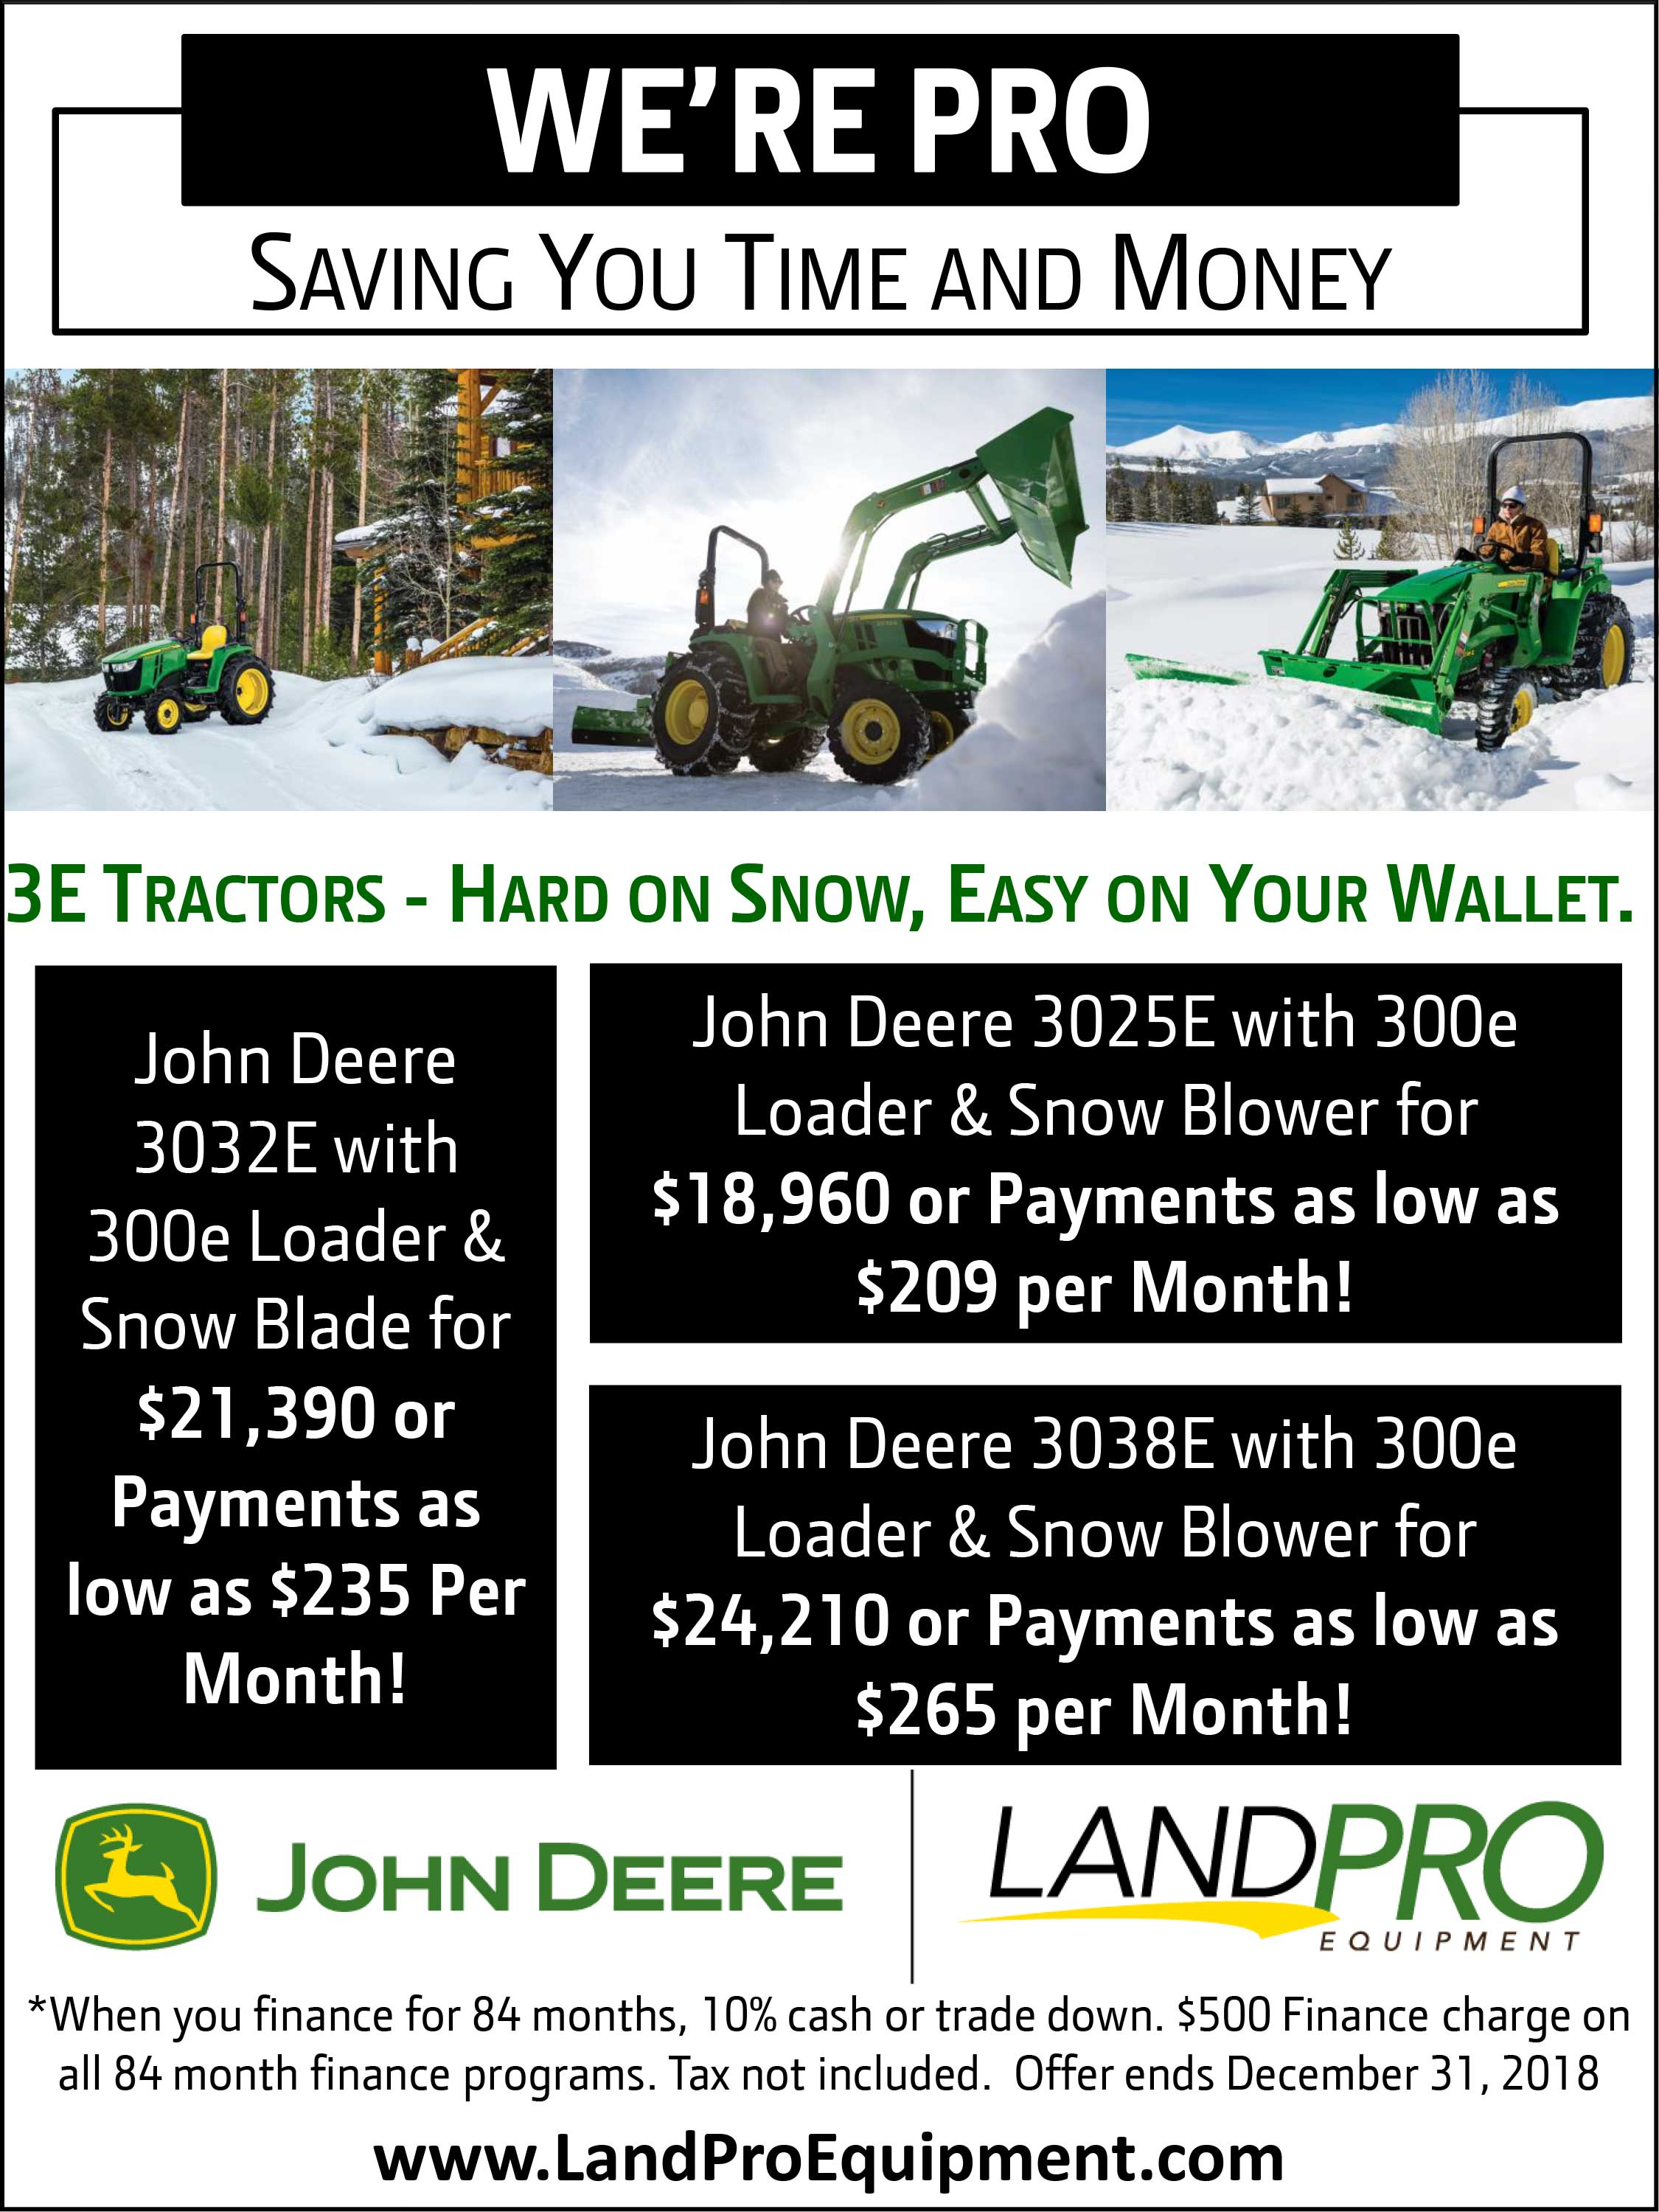 Pact Tractors Landpro Equipment Ny Oh Pa. 3e Tractors. John Deere. 3032e John Deere Pto Diagram At Scoala.co